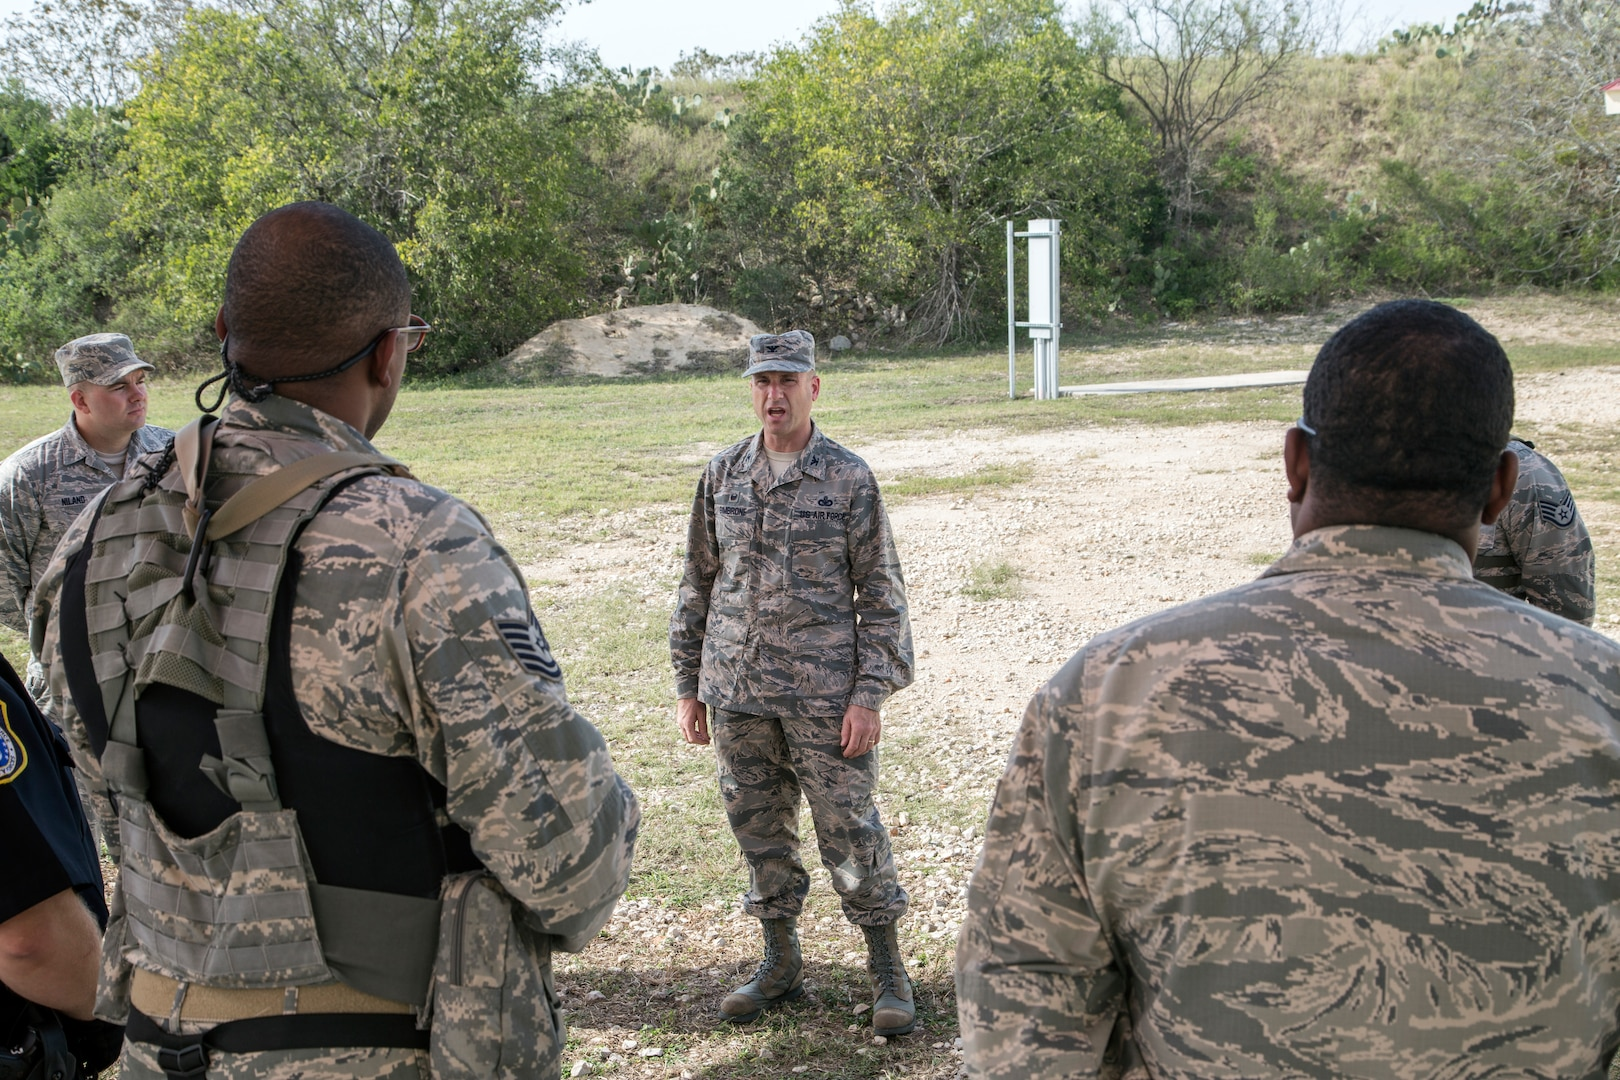 Col. Michael Gimbrone, 502nd Security Forces and Logistics Support Group commander, addresses members of the 902nd Security Forces Squadron after completing a barricaded suspect exercise Nov. 10 at Joint Base San Antonio-Randolph's Camp Talon. Security forces members exchanged simulated munitions fire with hostiles throughout the exercise, bringing more realism while practicing assault force maneuvers during the exercise scenario. (U.S. Air Force photo by Johnny Saldivar)